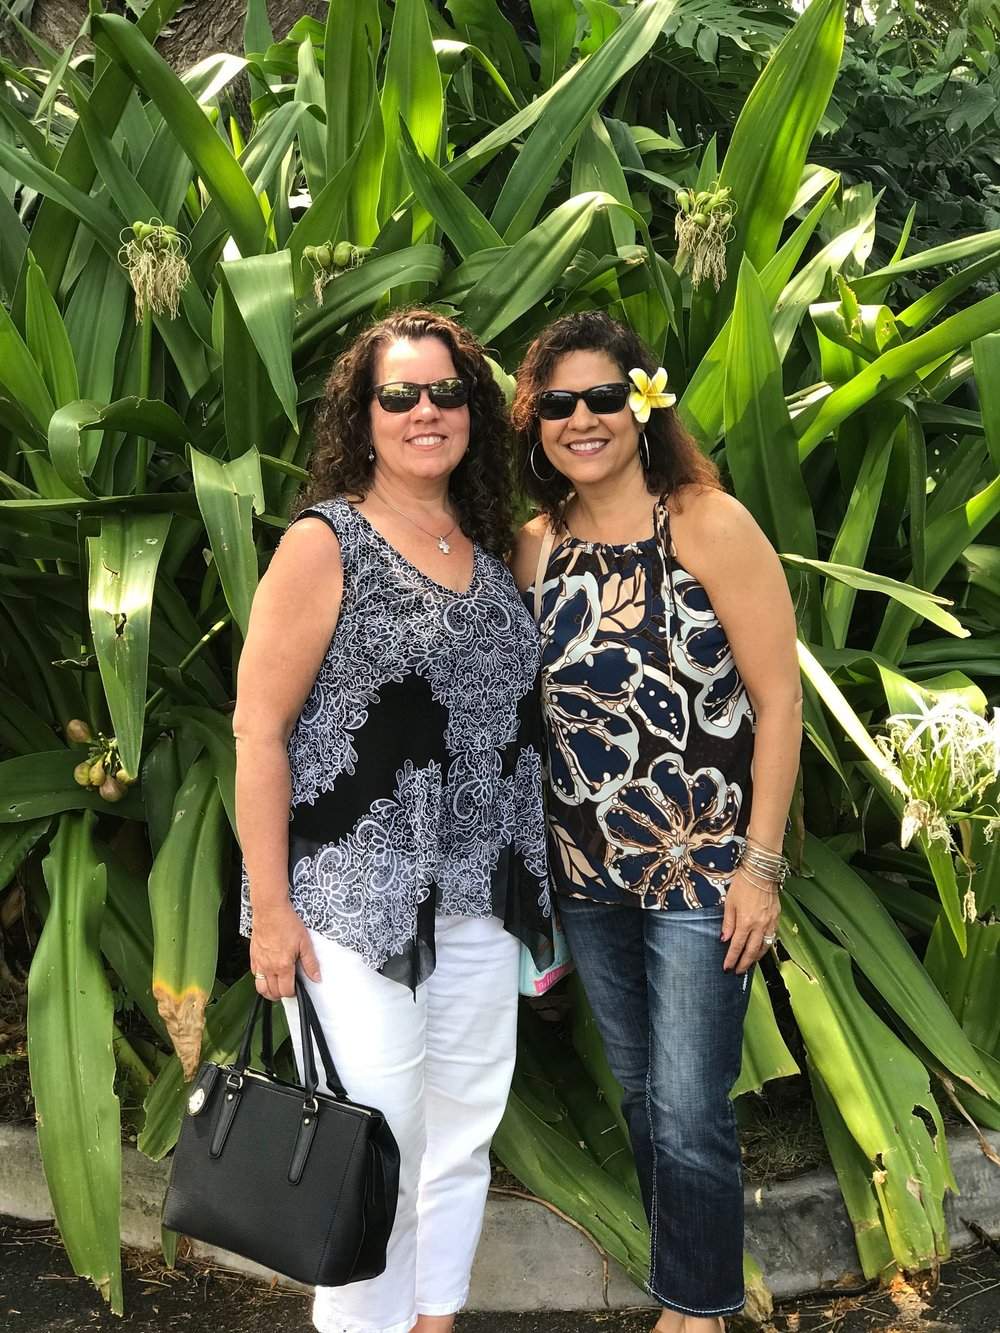 Jodi and Cindy in Maui